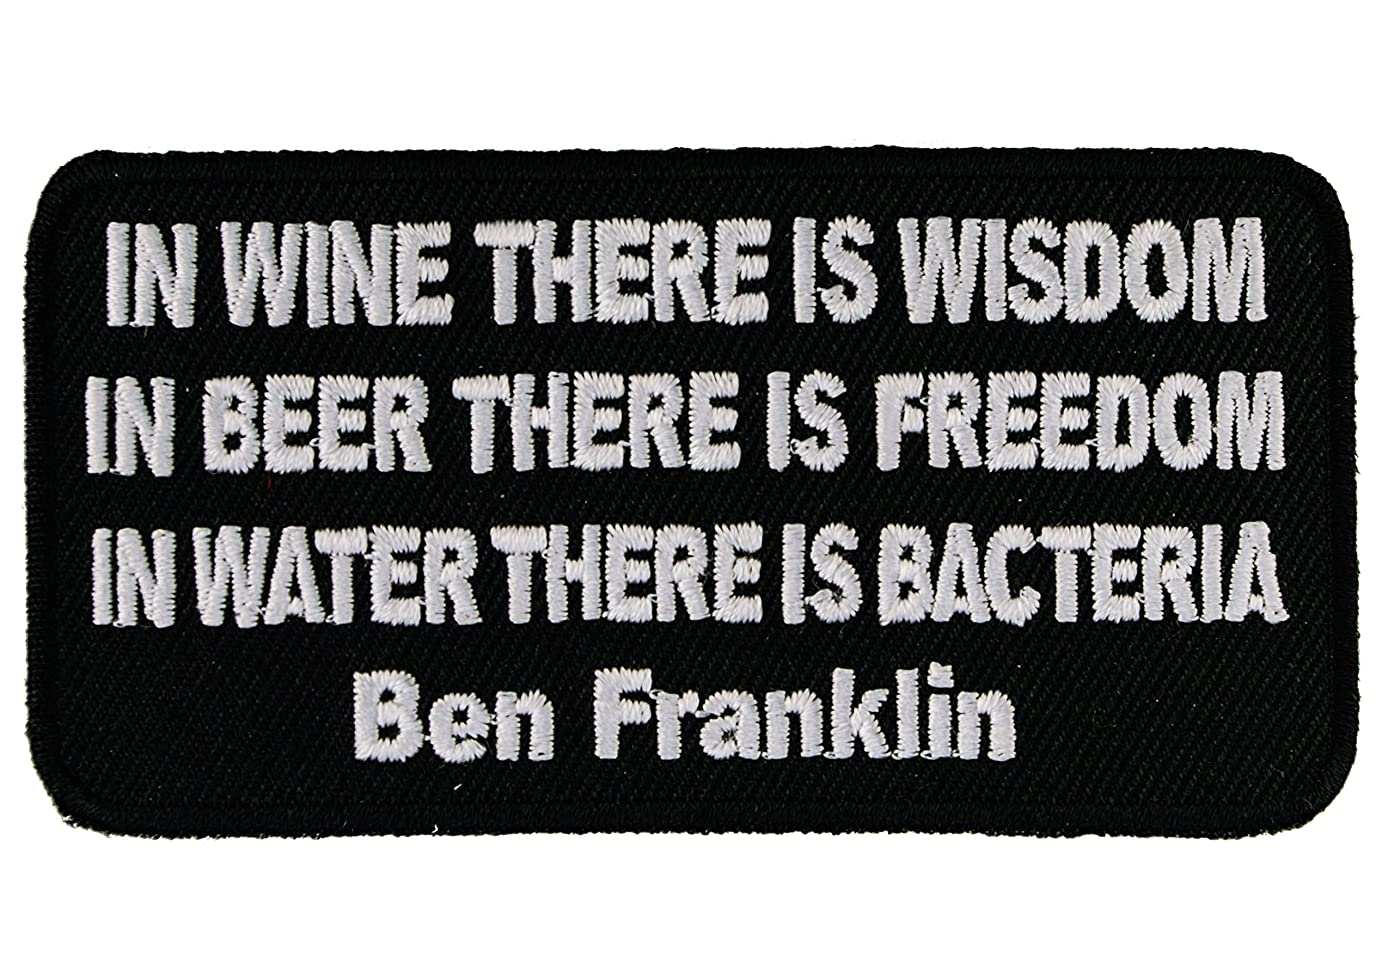 In Wine There Is Wisdom In Beer There Is Freedom In Water There Is Bacteria Ben Franklin 4 inch Iron or Sew on Biker Back Patch